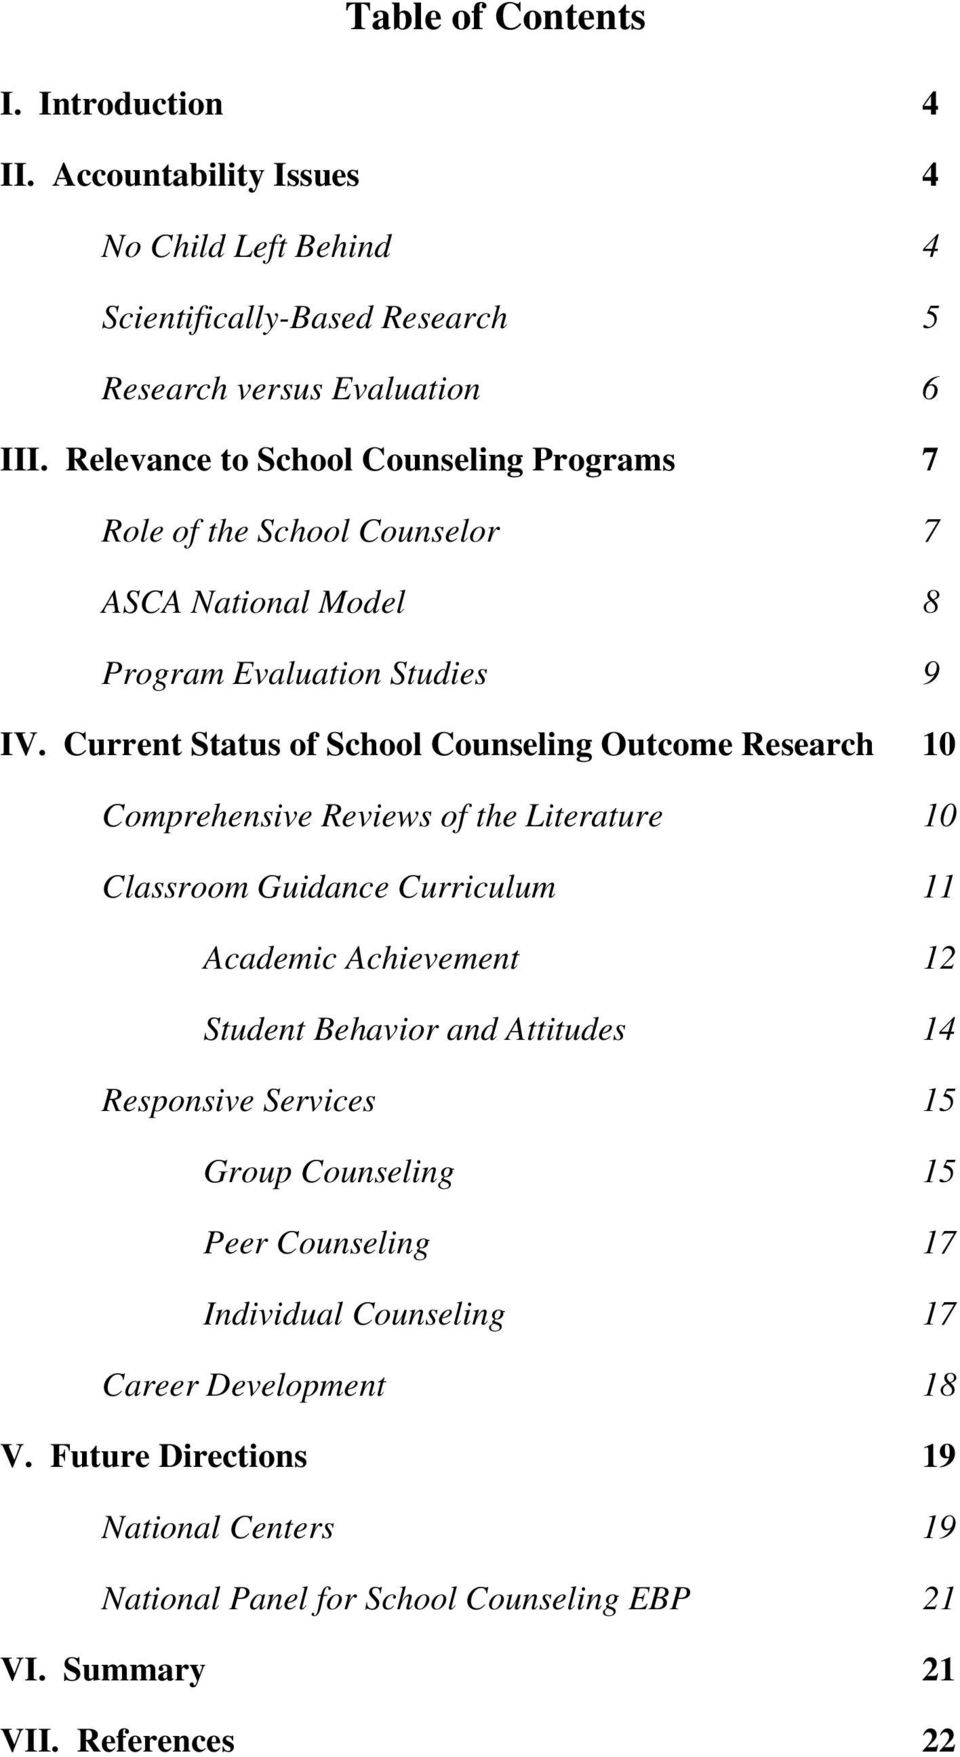 Current Status of School Counseling Outcome Research 10 Comprehensive Reviews of the Literature 10 Classroom Guidance Curriculum 11 Academic Achievement 12 Student Behavior